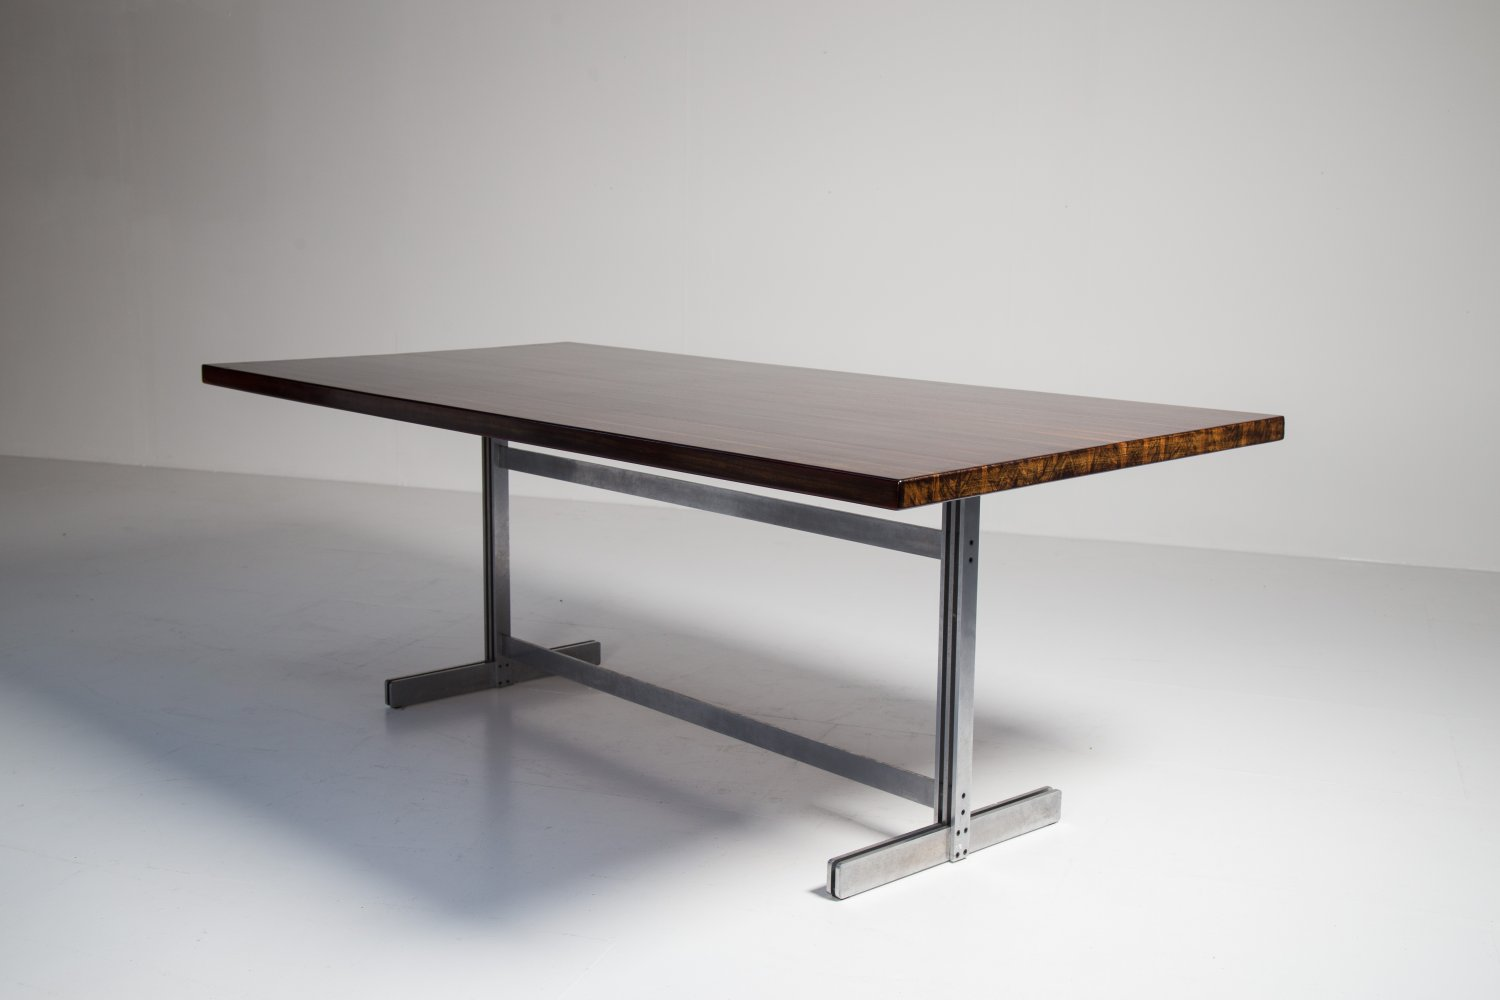 Jules Wabbes Dining Table or Desk